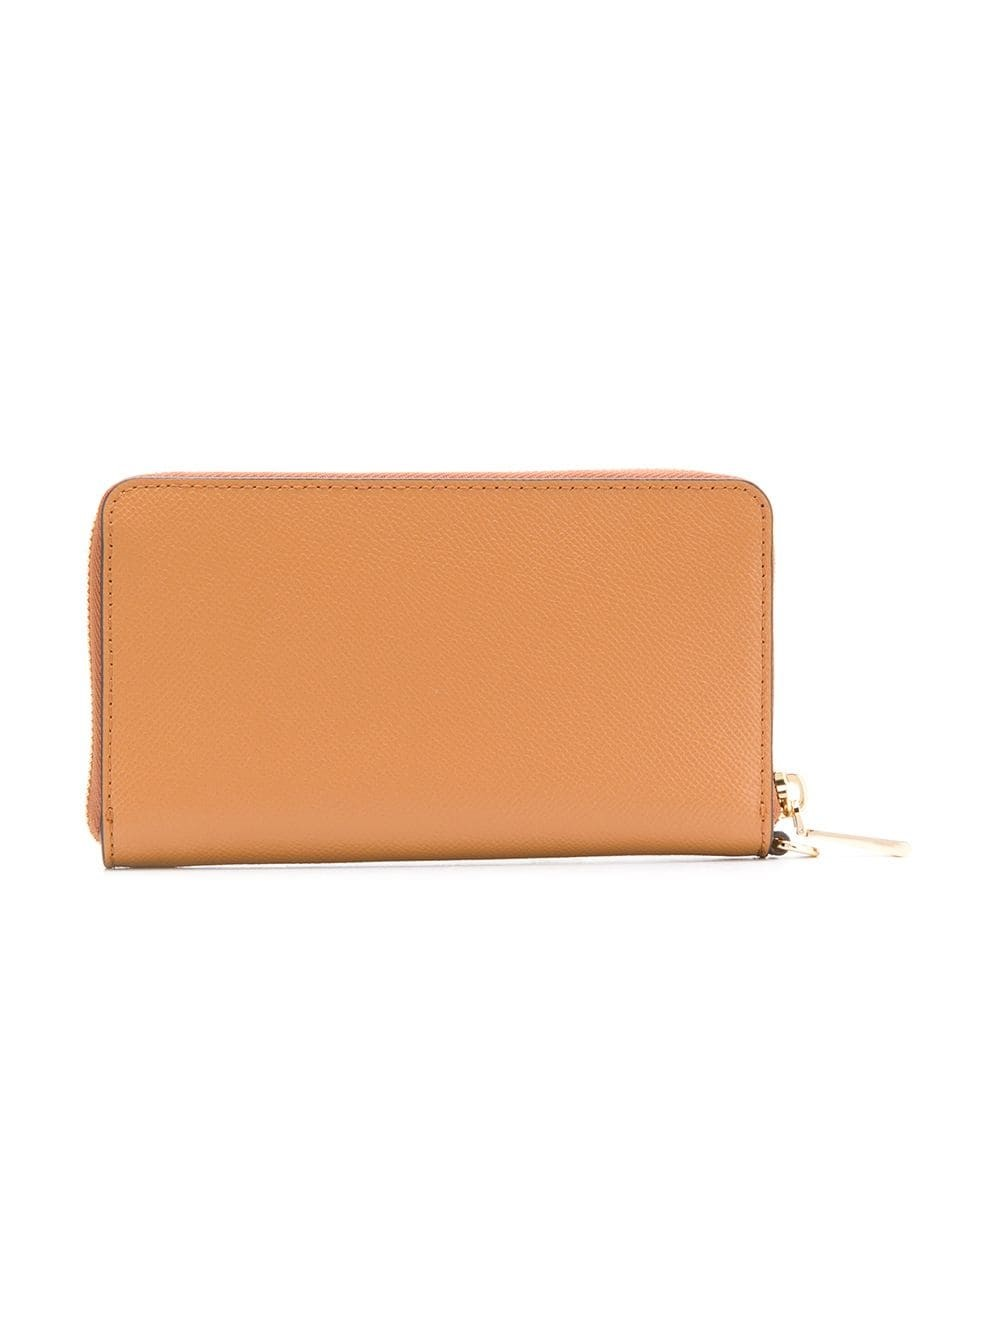 04d7f681cb16 michael kors mk LOGO CONTINENTAL WALLET available on montiboutique ...